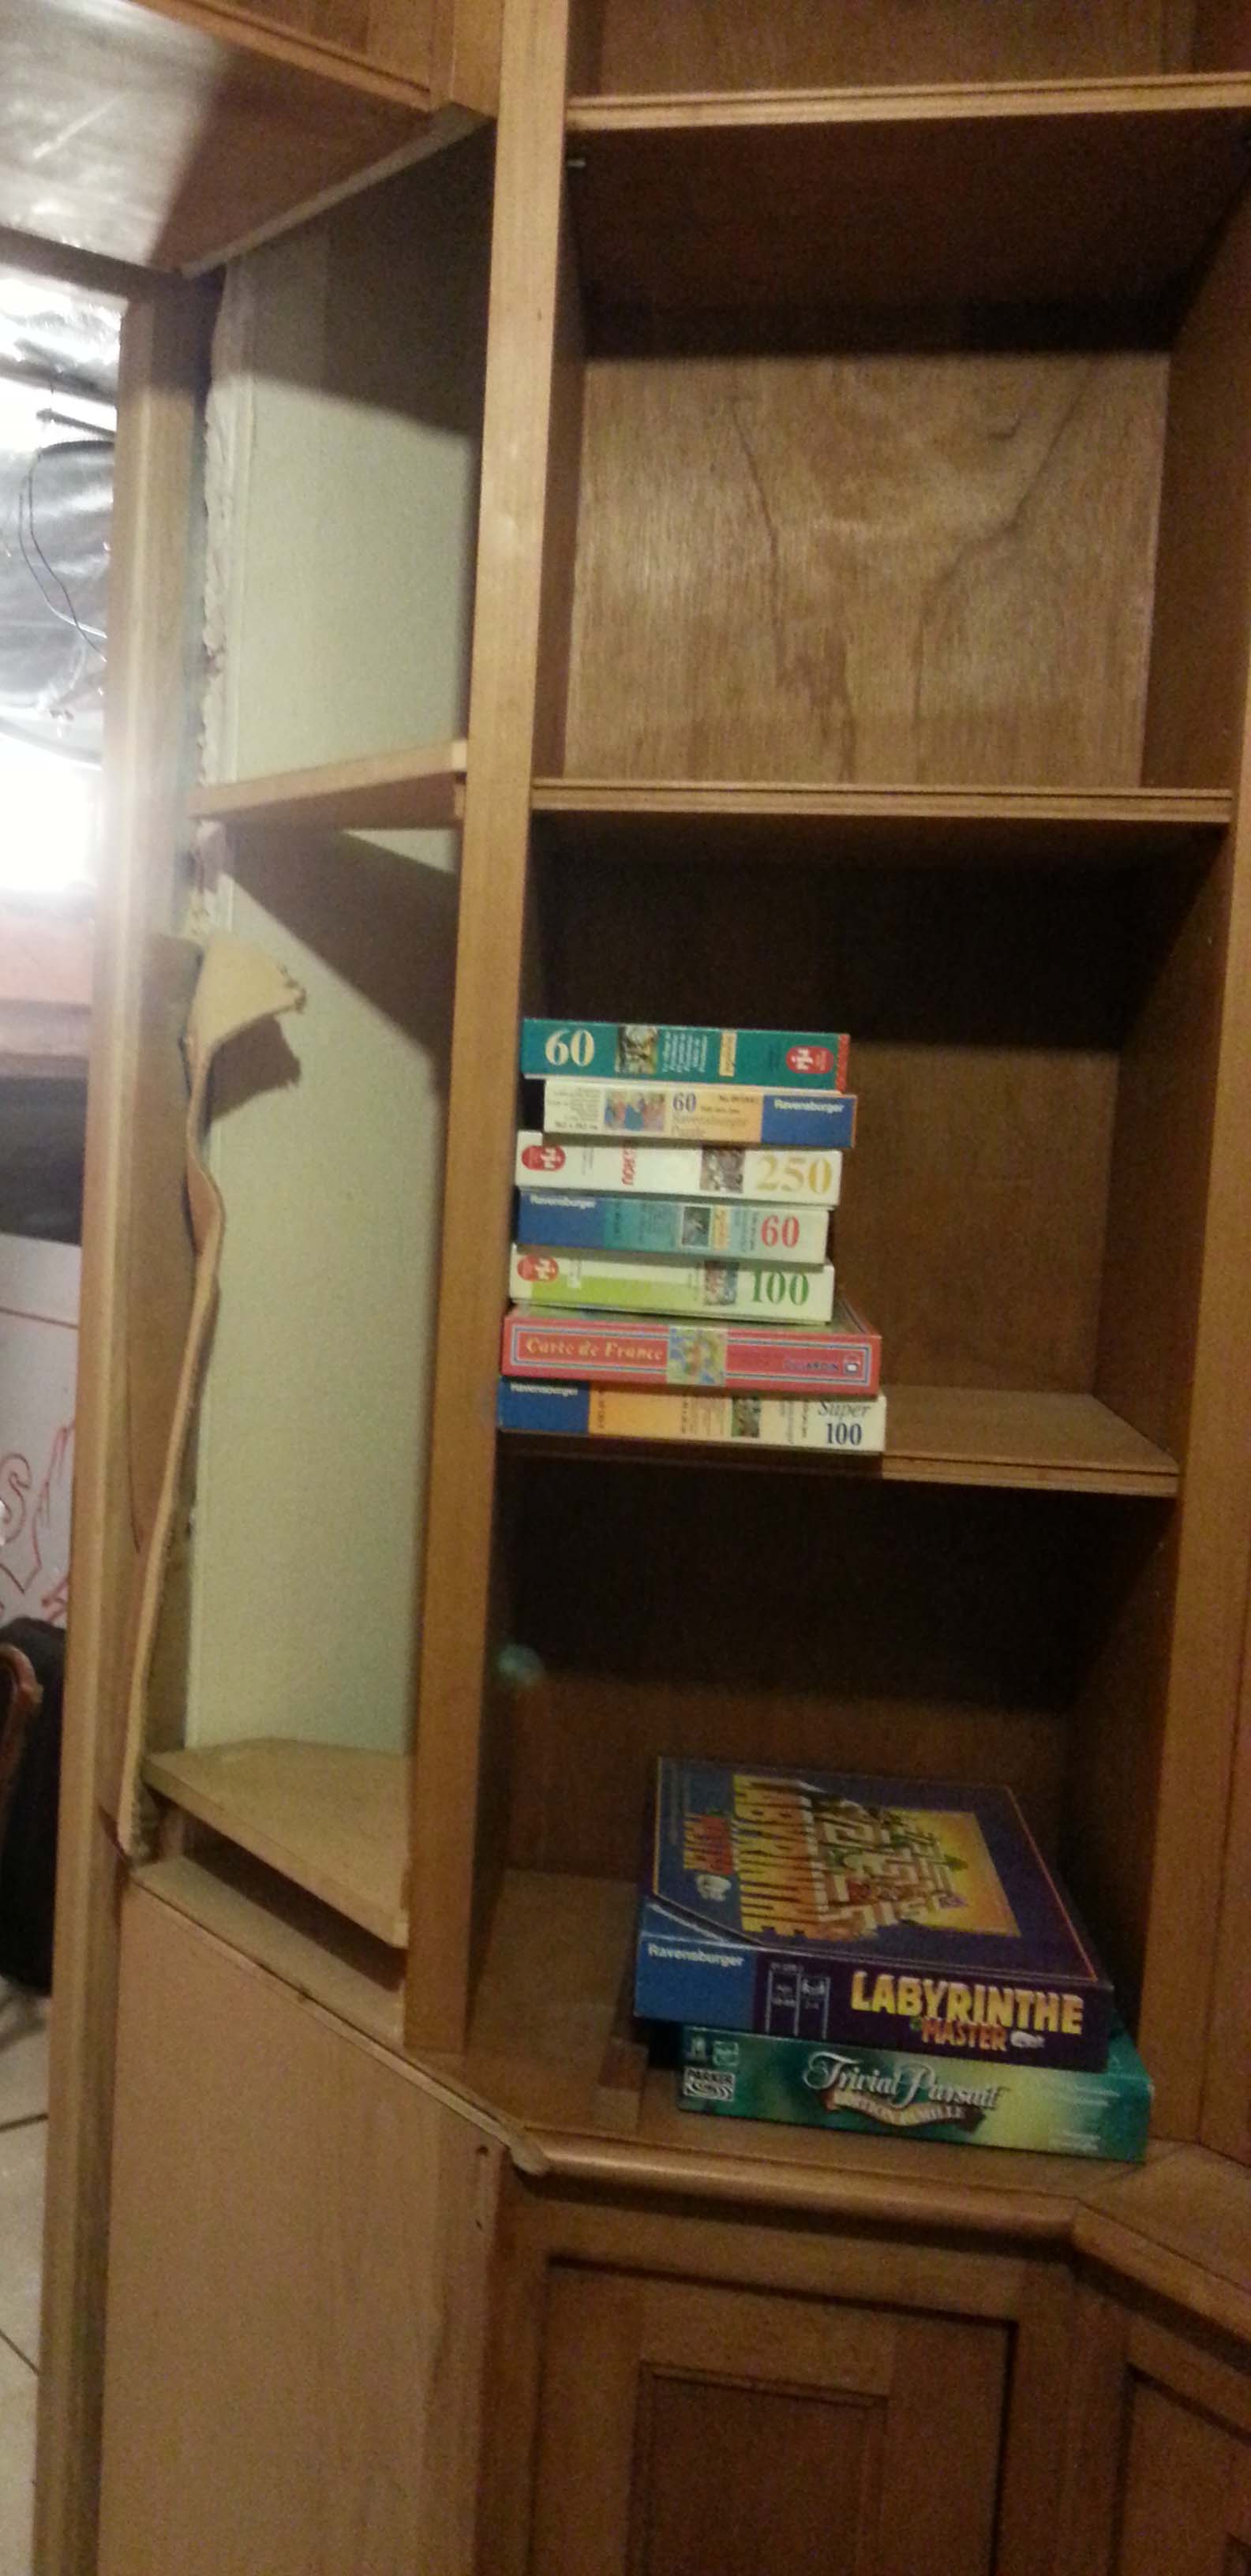 Biblioth Que Elodie Lecointre # Creer Une Bibliotheque